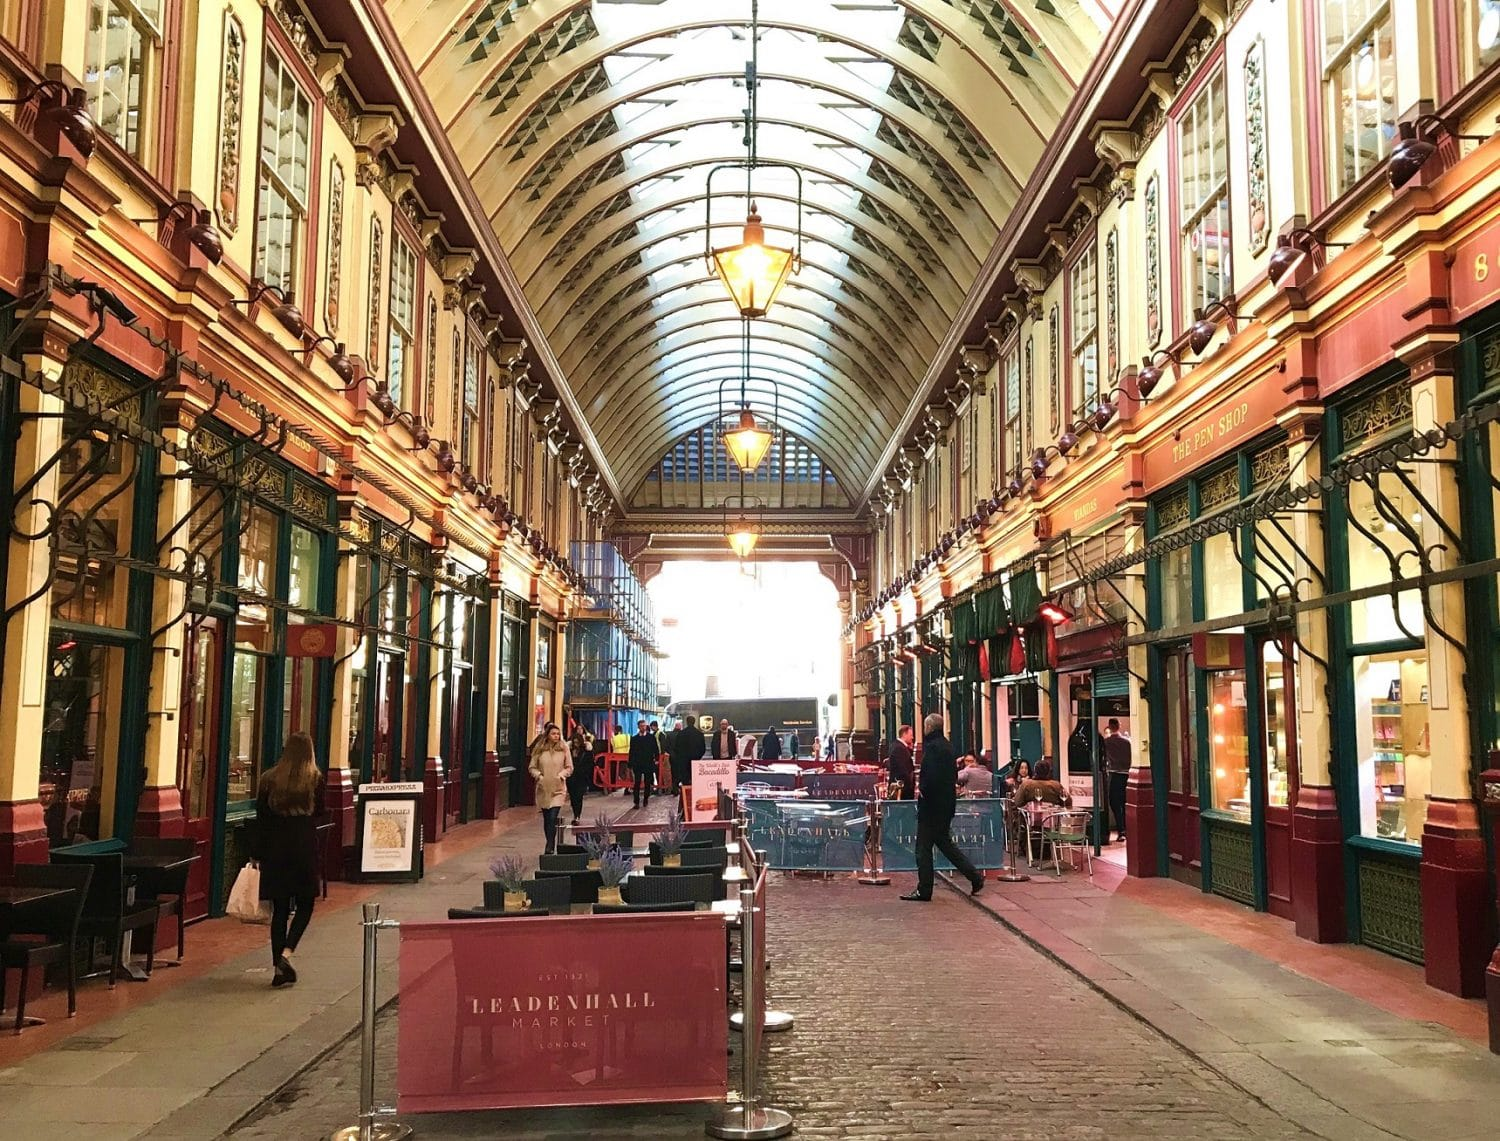 Leadenhall Market featured as Diagon Alley in the Harry Potter films